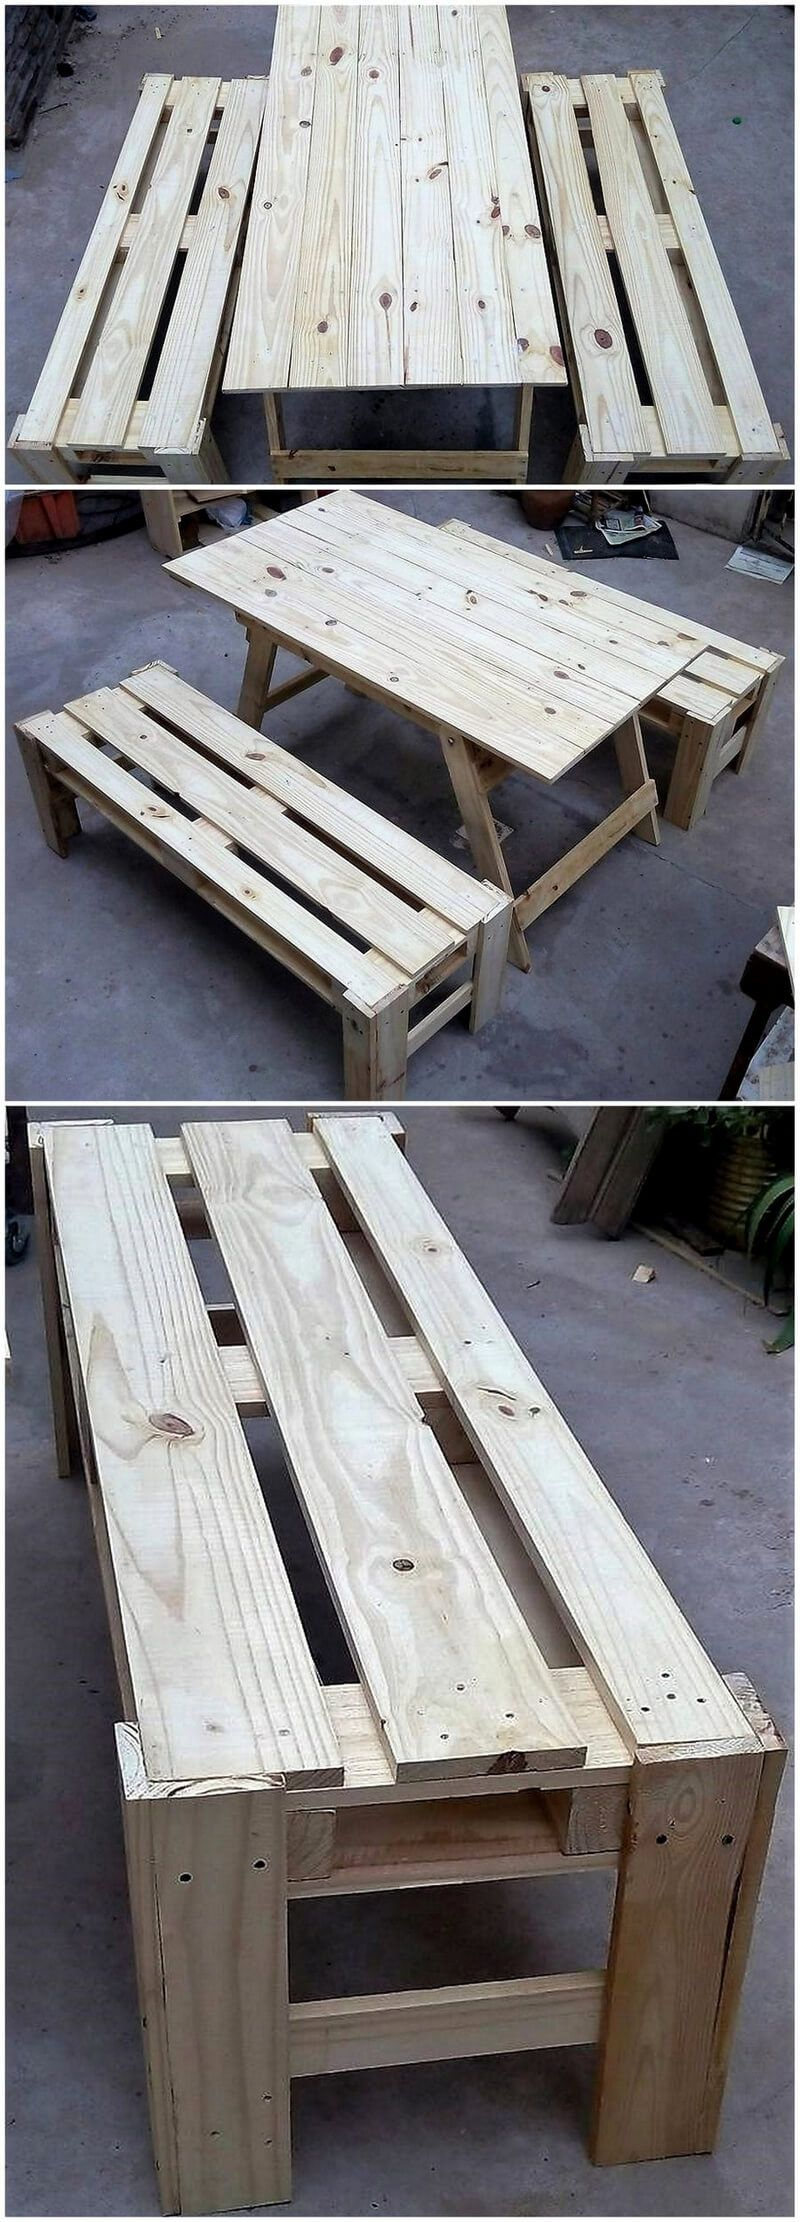 simple and creative ideas for wood pallet recycling pallet rh pinterest com